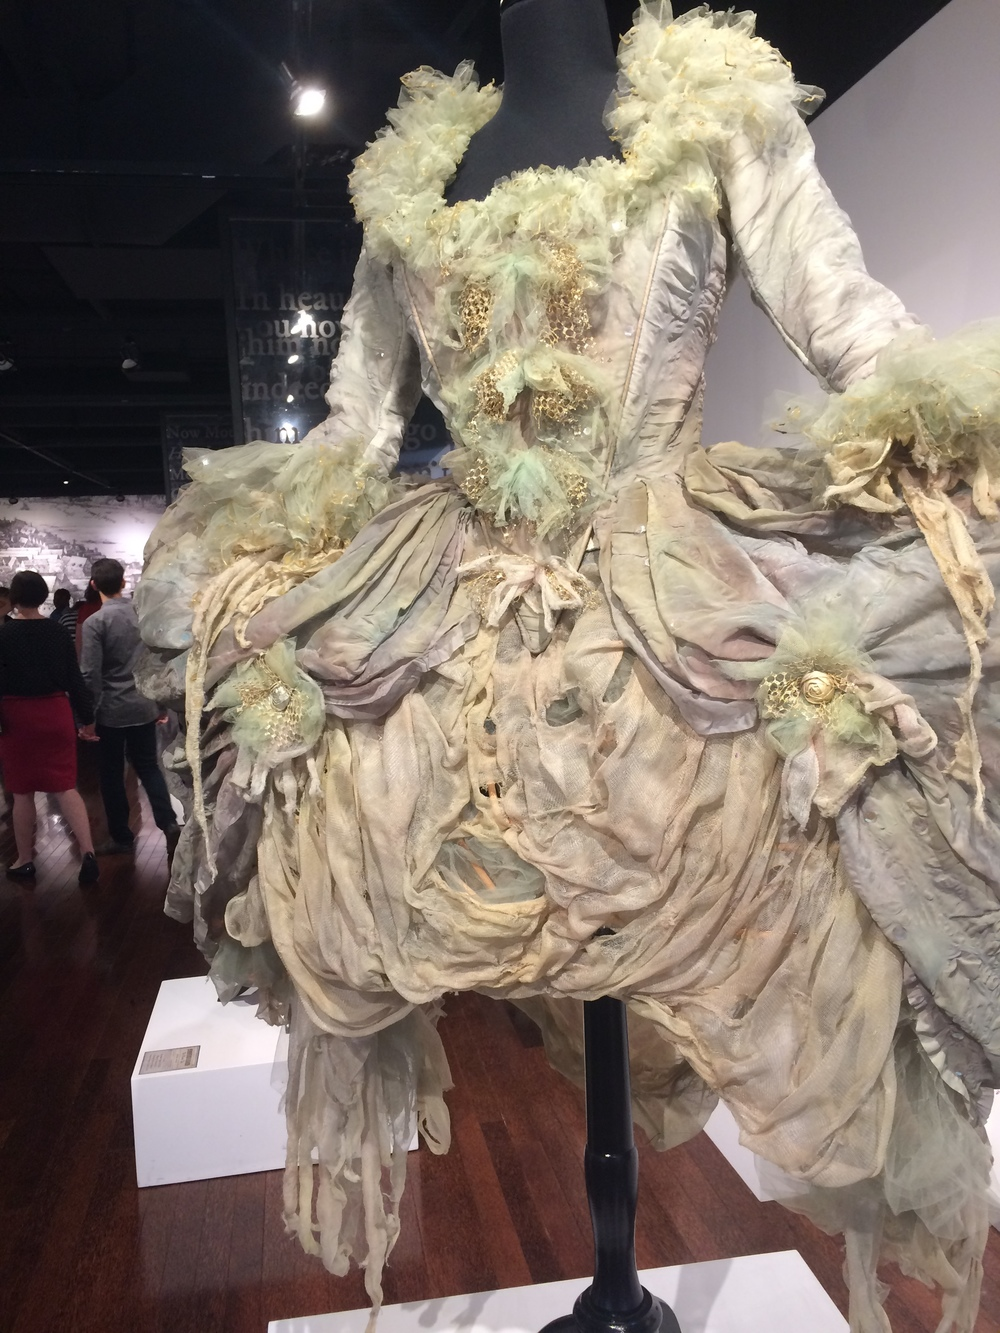 This was Moth the fairy's costume in a 1985 production of  A Midsummer Night's Dream -  photos from the play looked like Marie Antoinette on acid